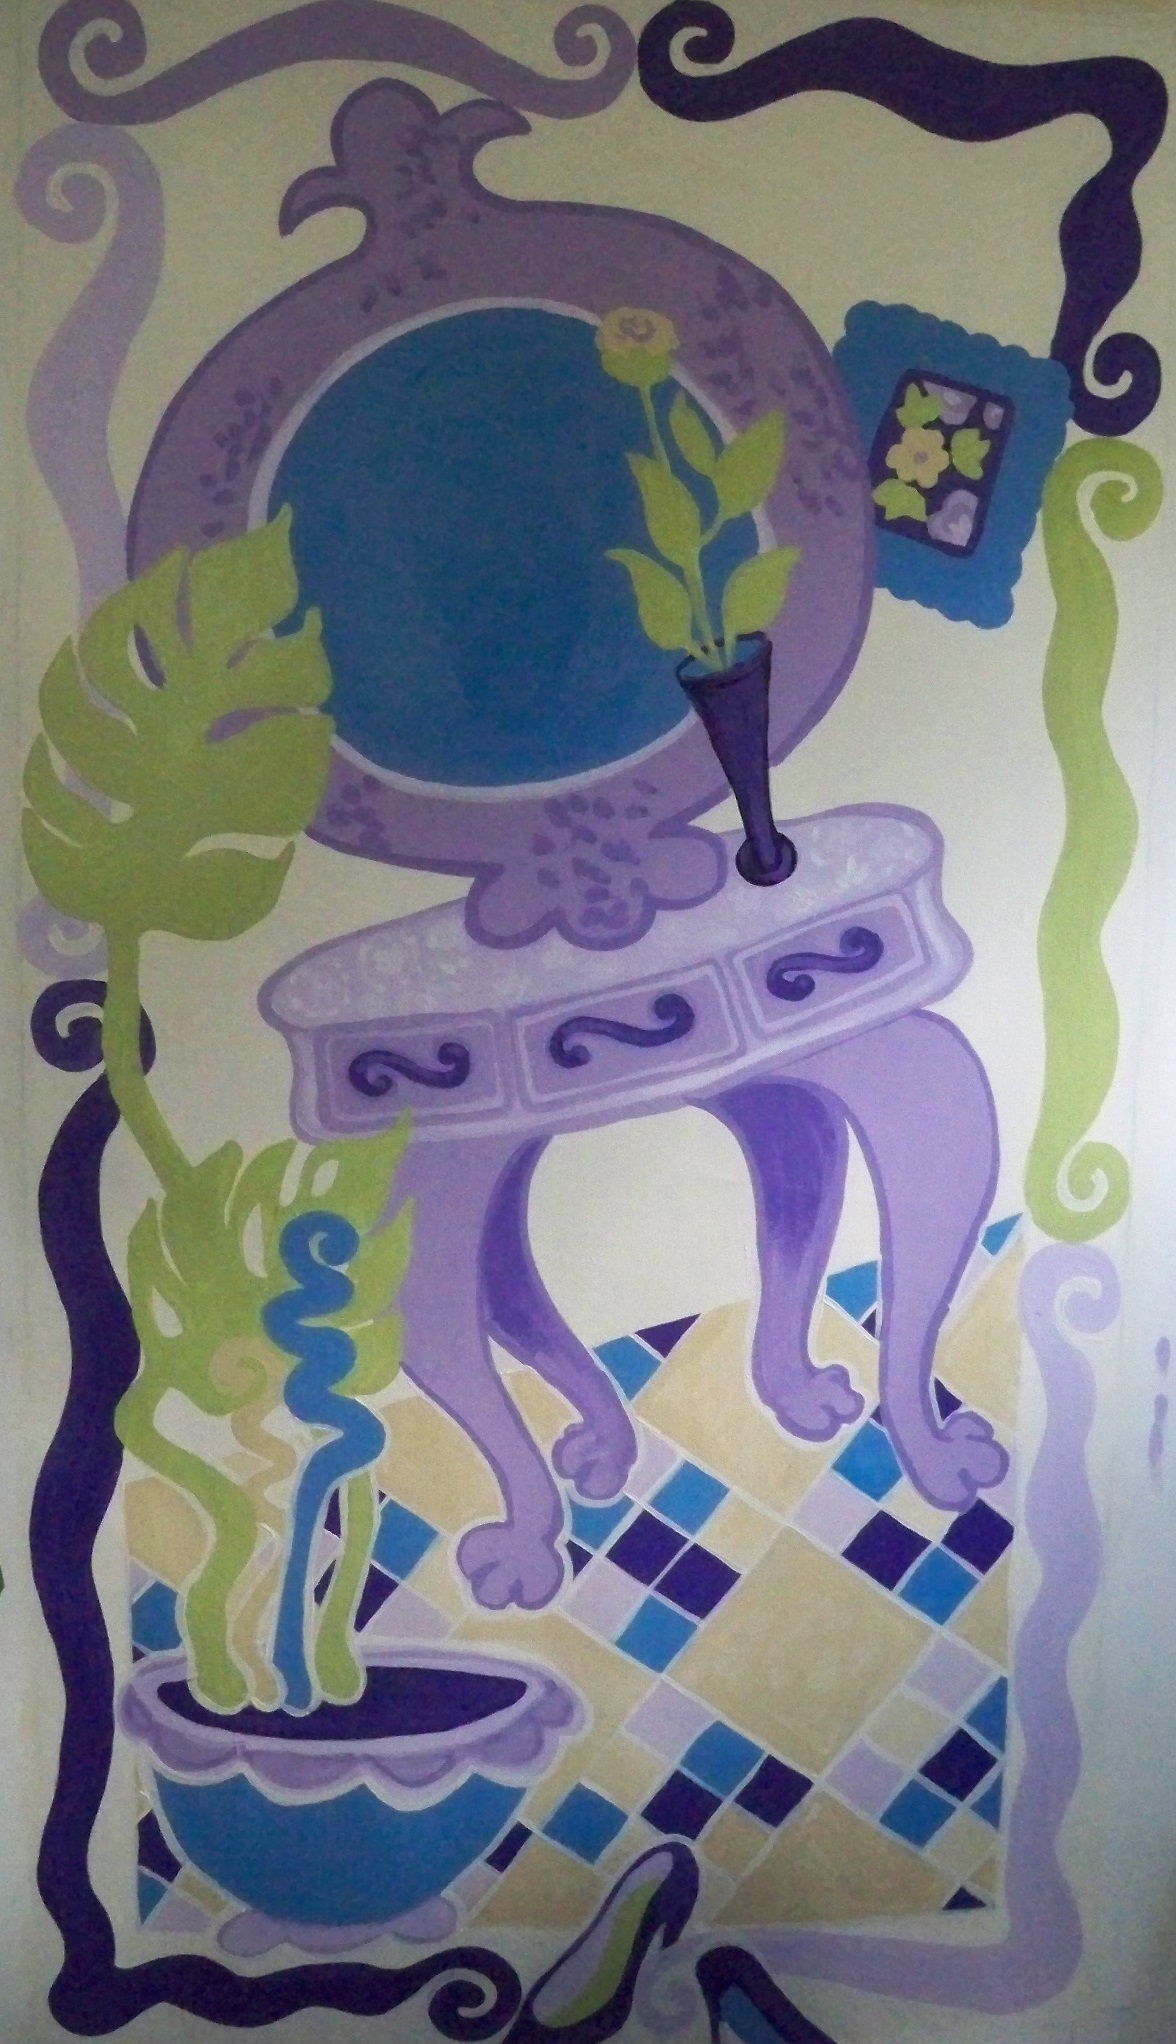 Murals By Marg girls room floormat.JPG